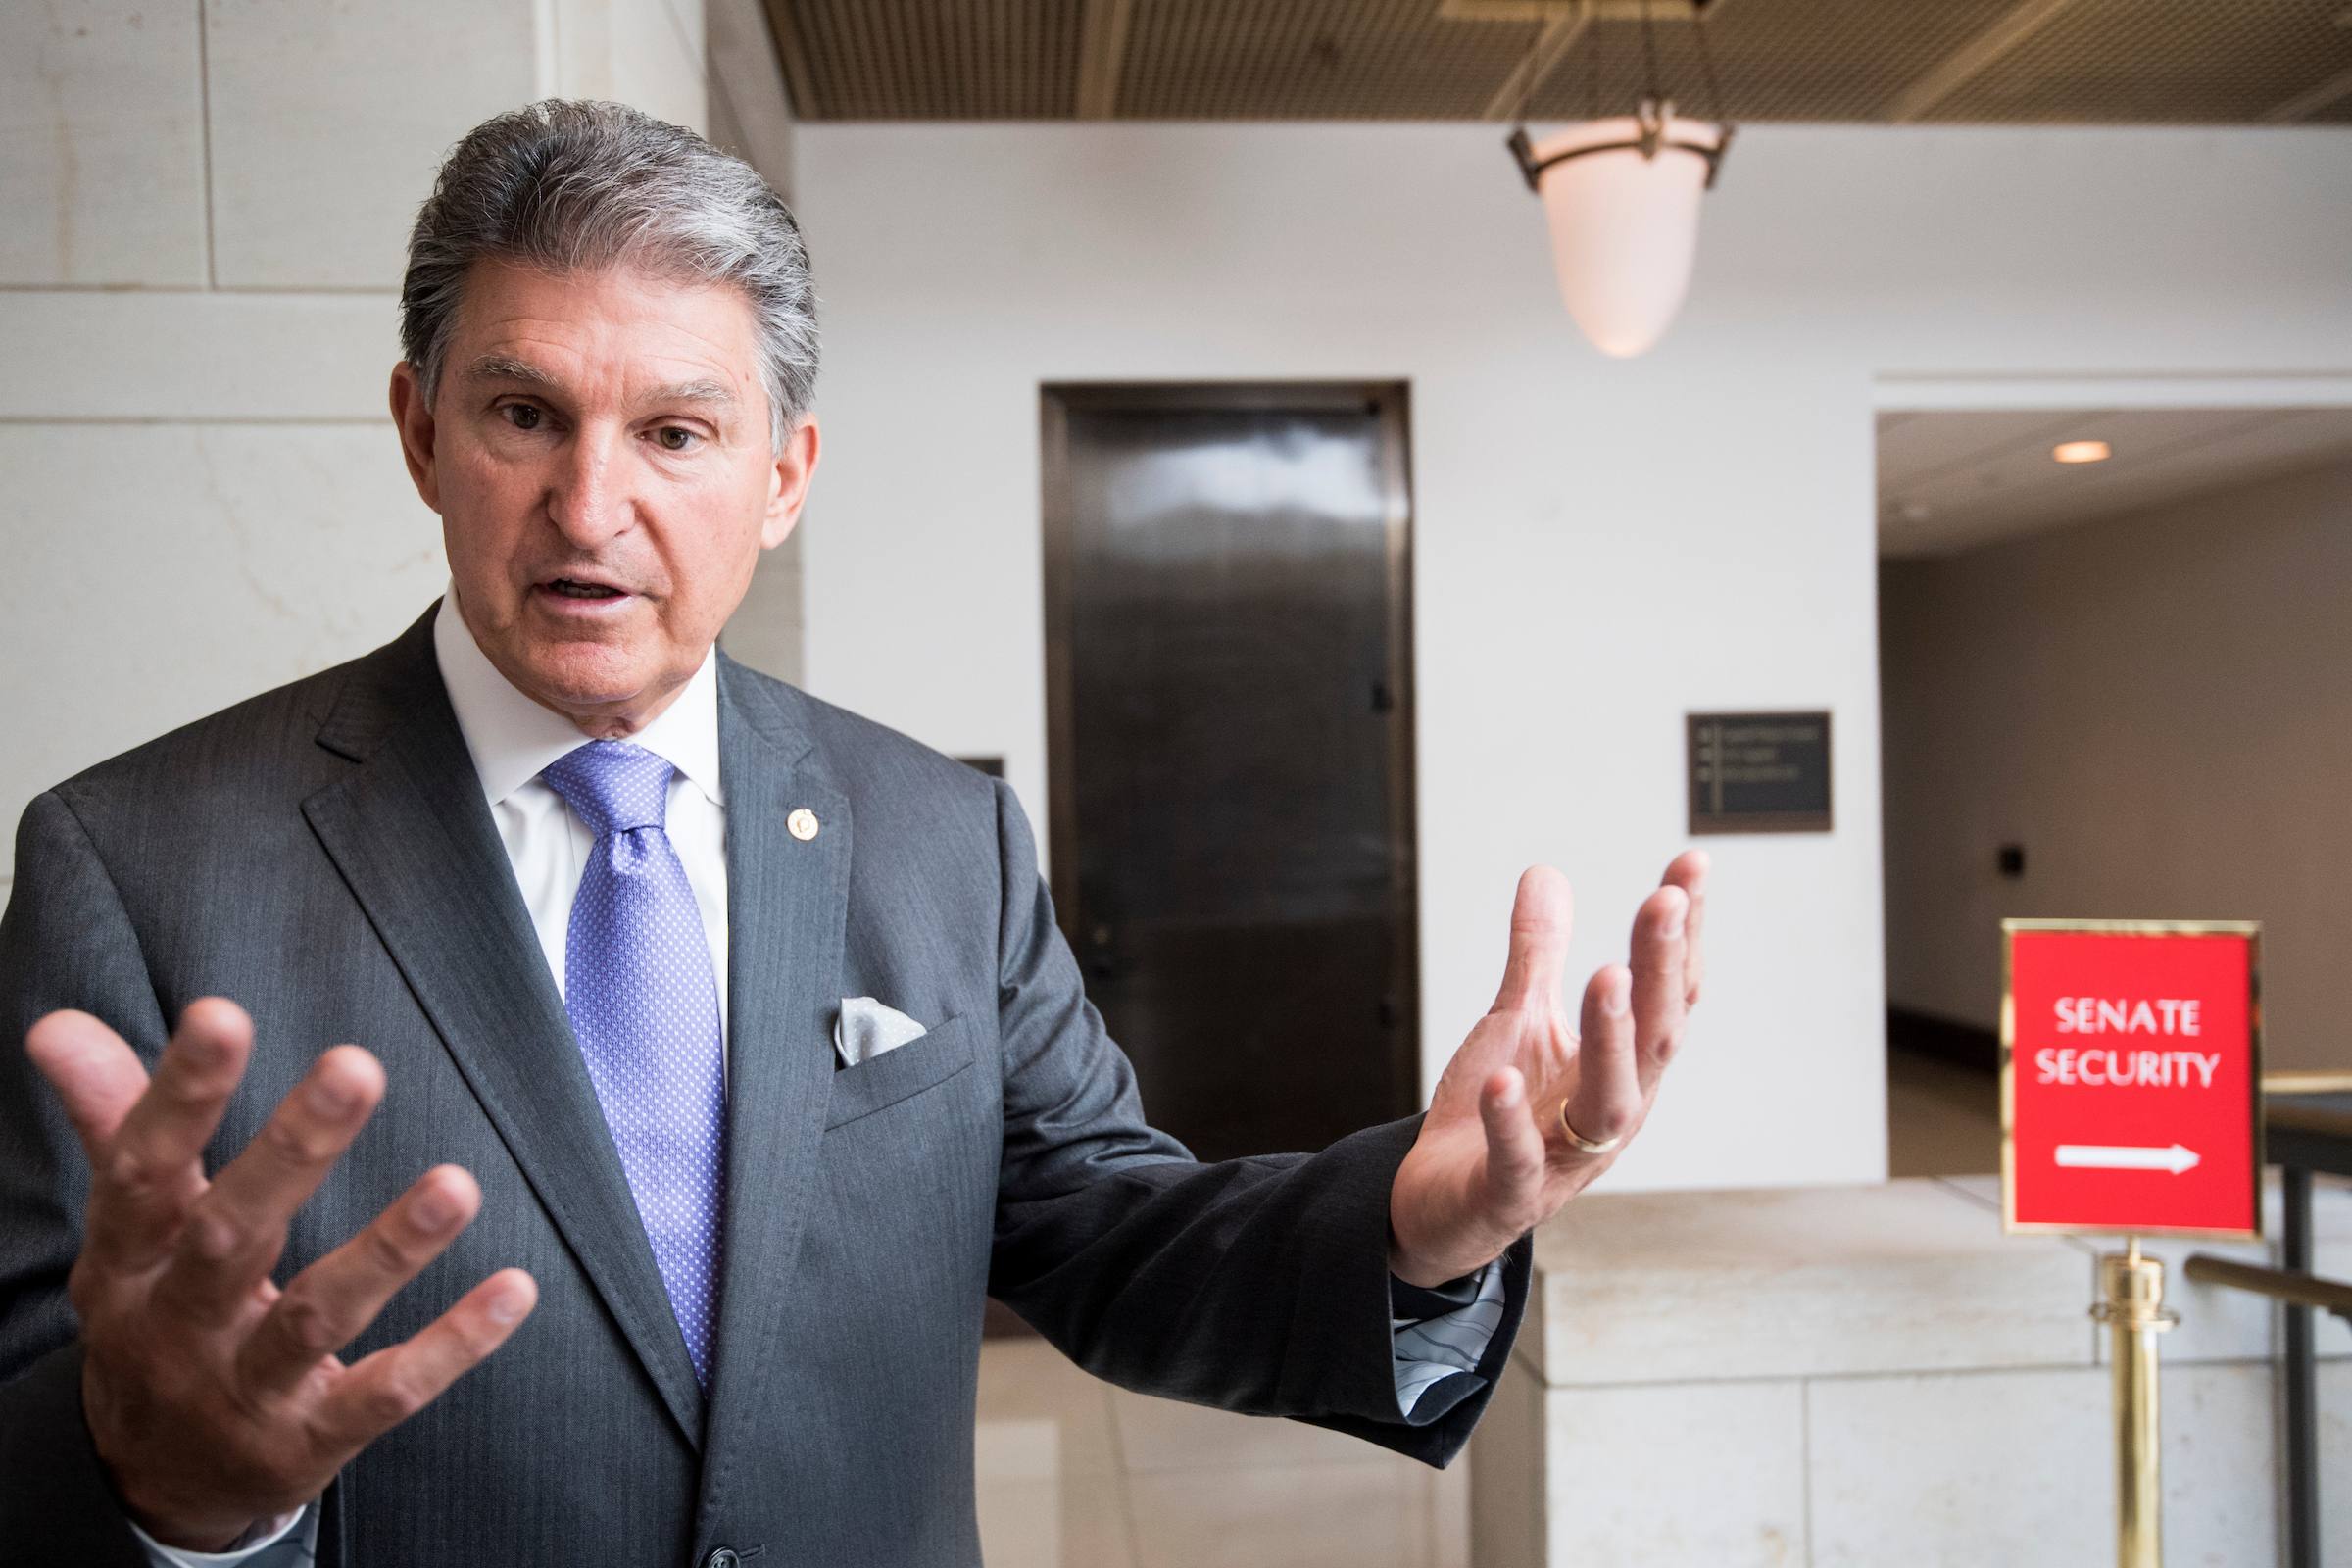 Sen. Joe Manchin, D-W. Va., speaks with reporters in the Capitol on Tuesday. (Bill Clark/CQ Roll Call)